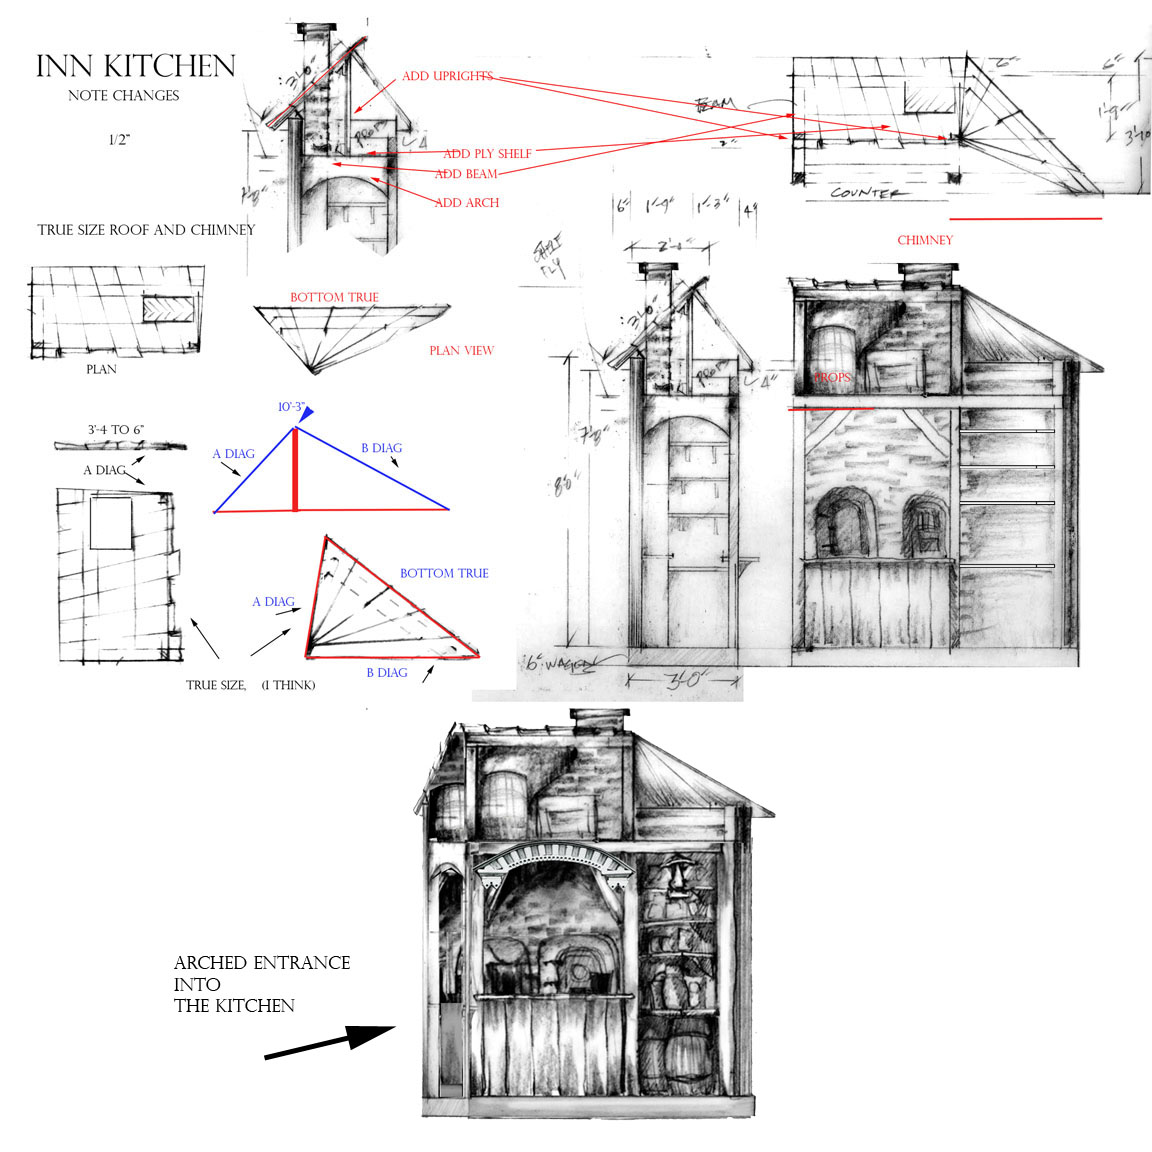 TOPOL in Fiddler on the Roof Production Design